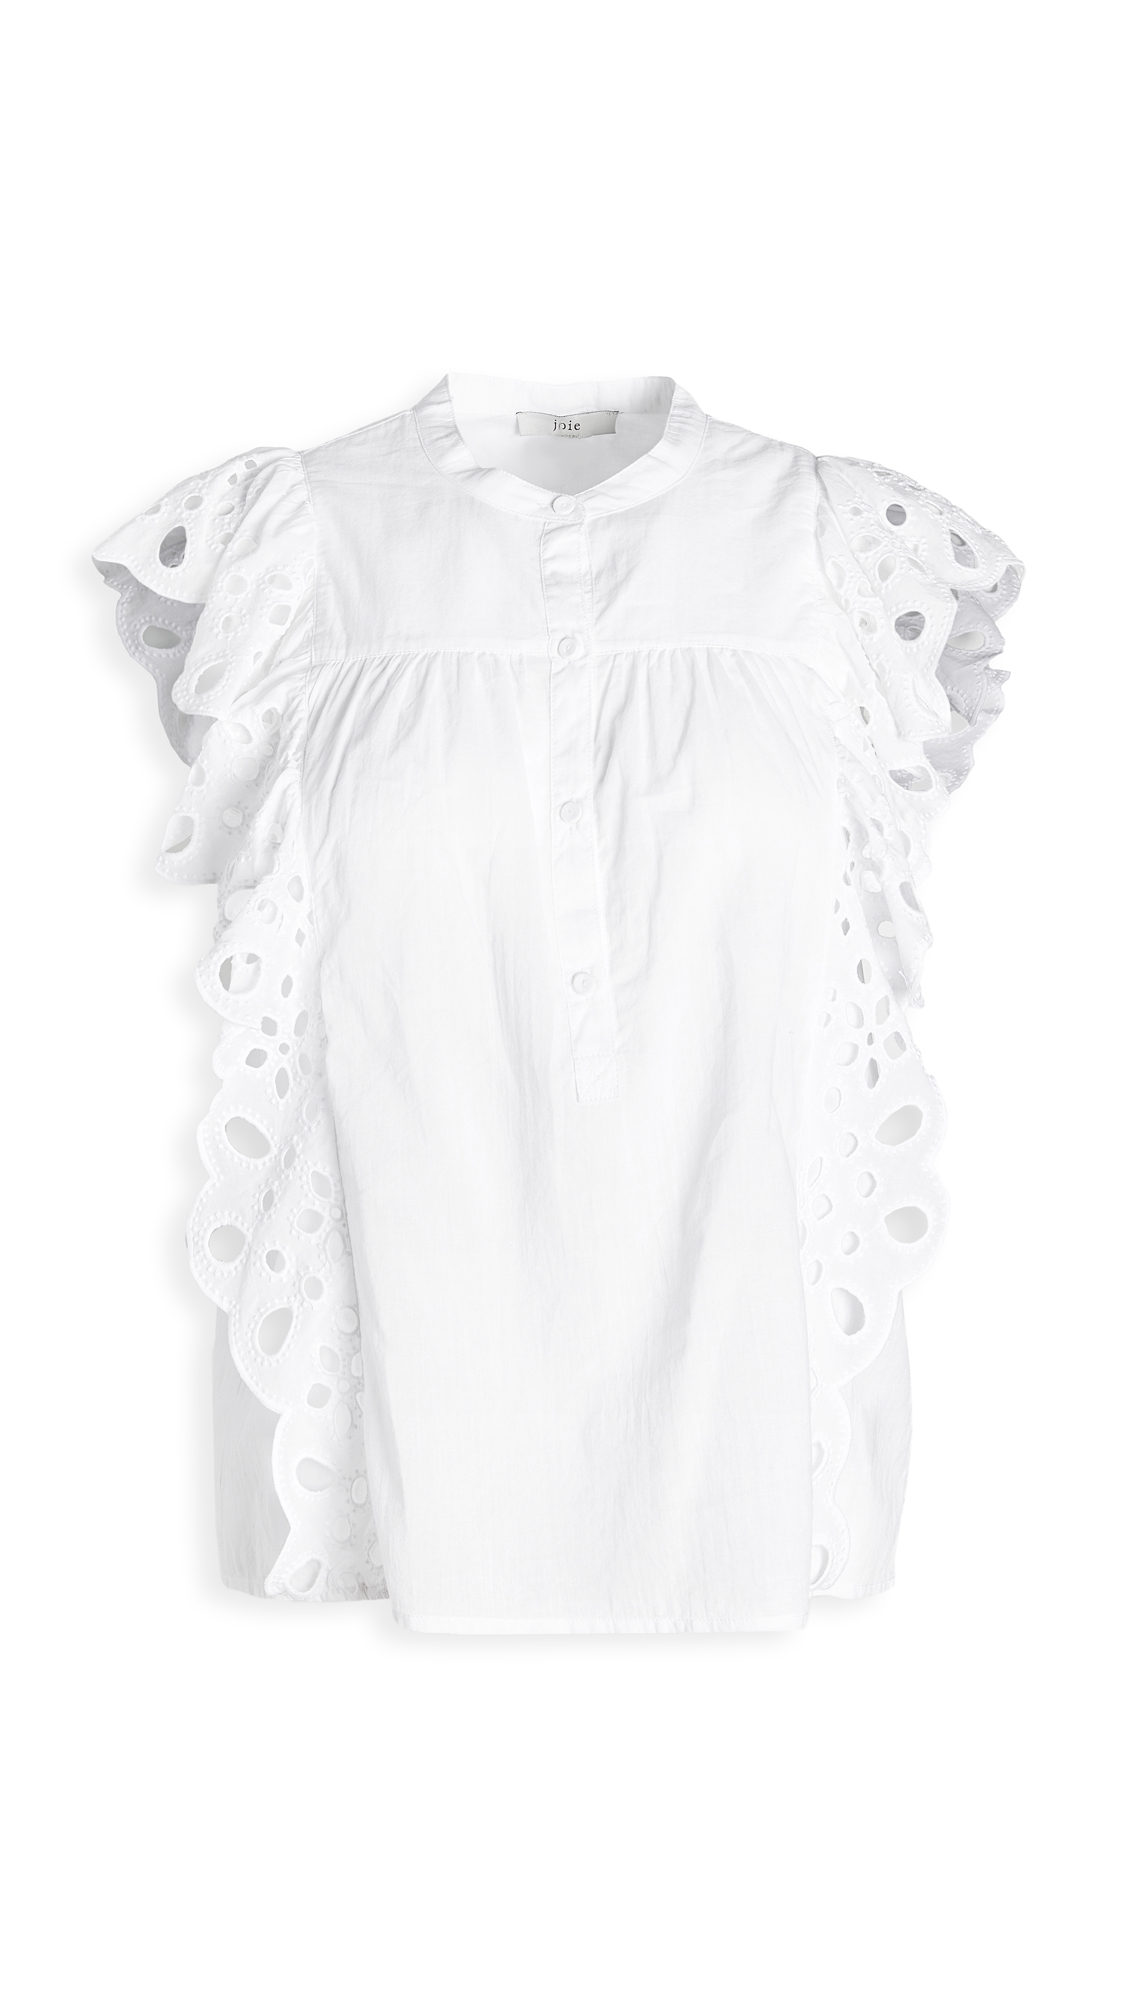 Joie Coralia Embroidered Top - 30% Off Sale